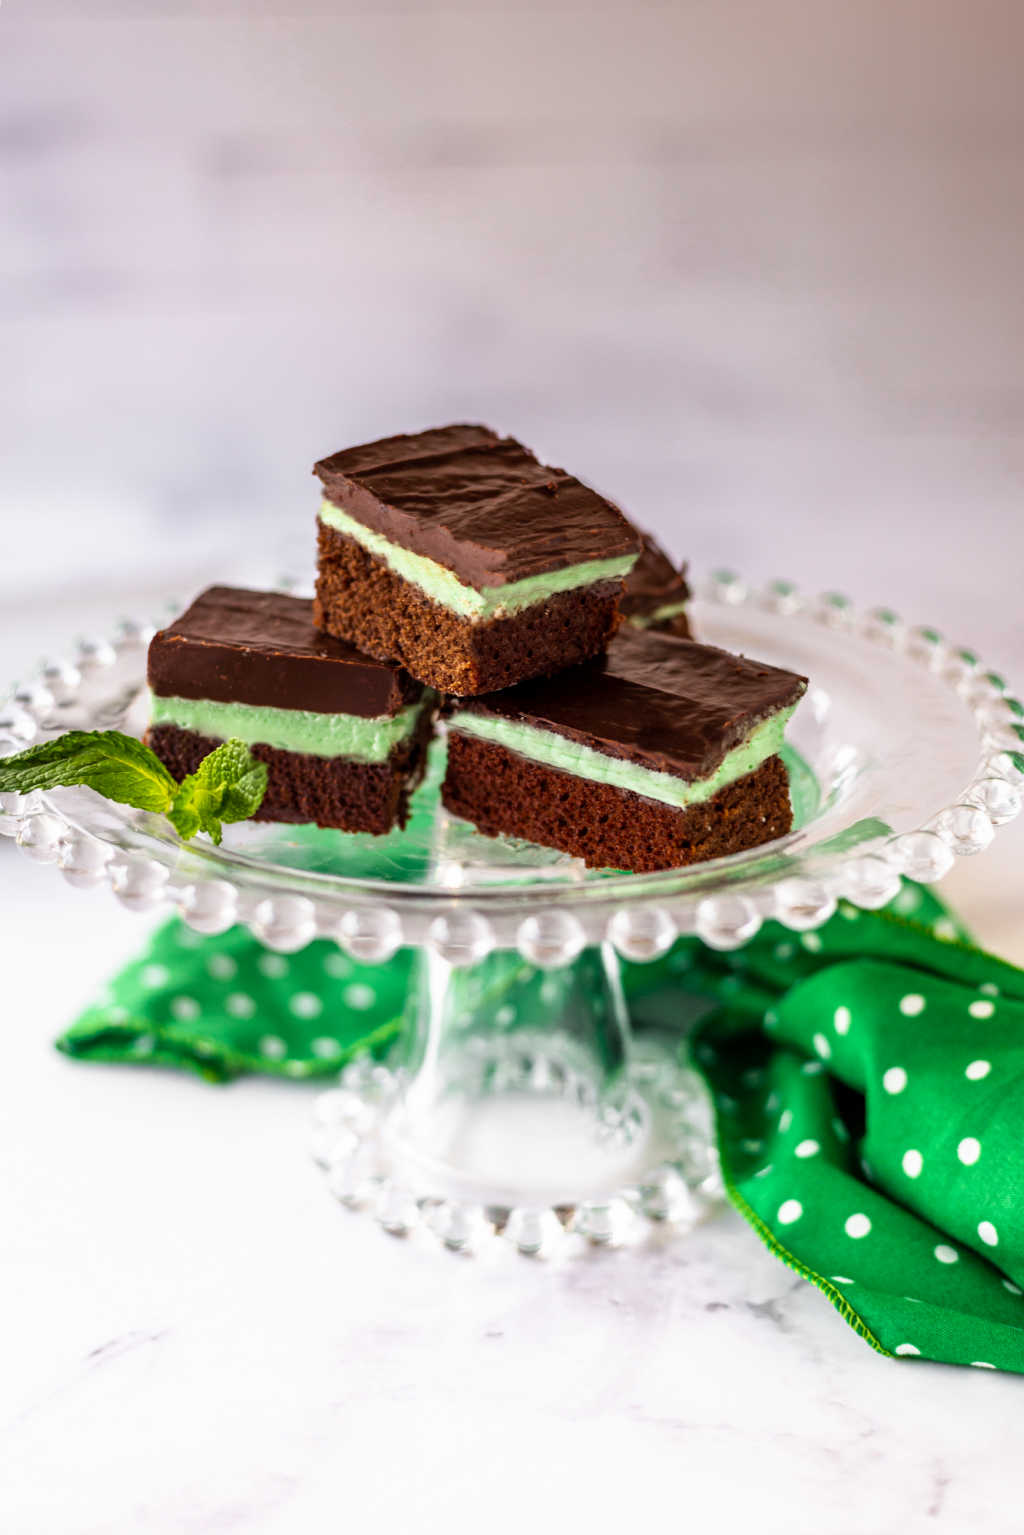 fudge mint brownies on a pedestal plate with a sprig of mint.